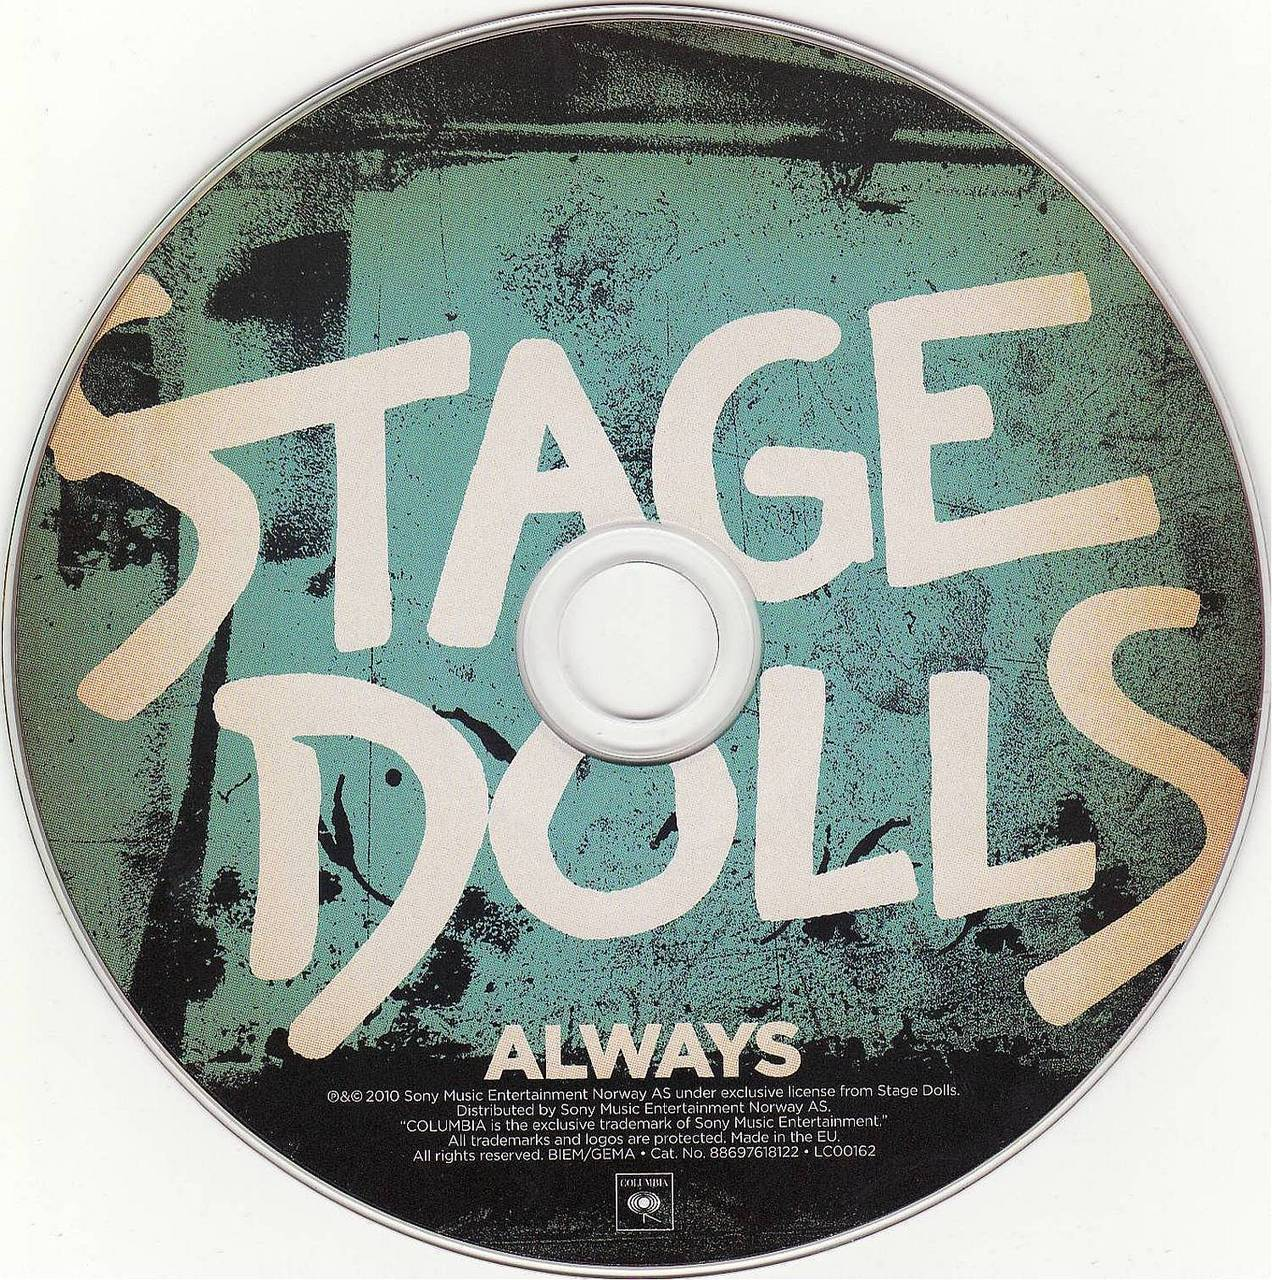 I was looking for new music and came across this album 'Always' by Stage Dolls. They've been around since 1983, but this is the first time I'm listening to these guys. Good fun rock. The album is pretty diverse and has everything from swaggering rock tunes to the slower introspective moments. 'Where the Blacktop Ends' even has a folky feel to it. Check it out if you are a melodic rock/AOR fan looking for something new.